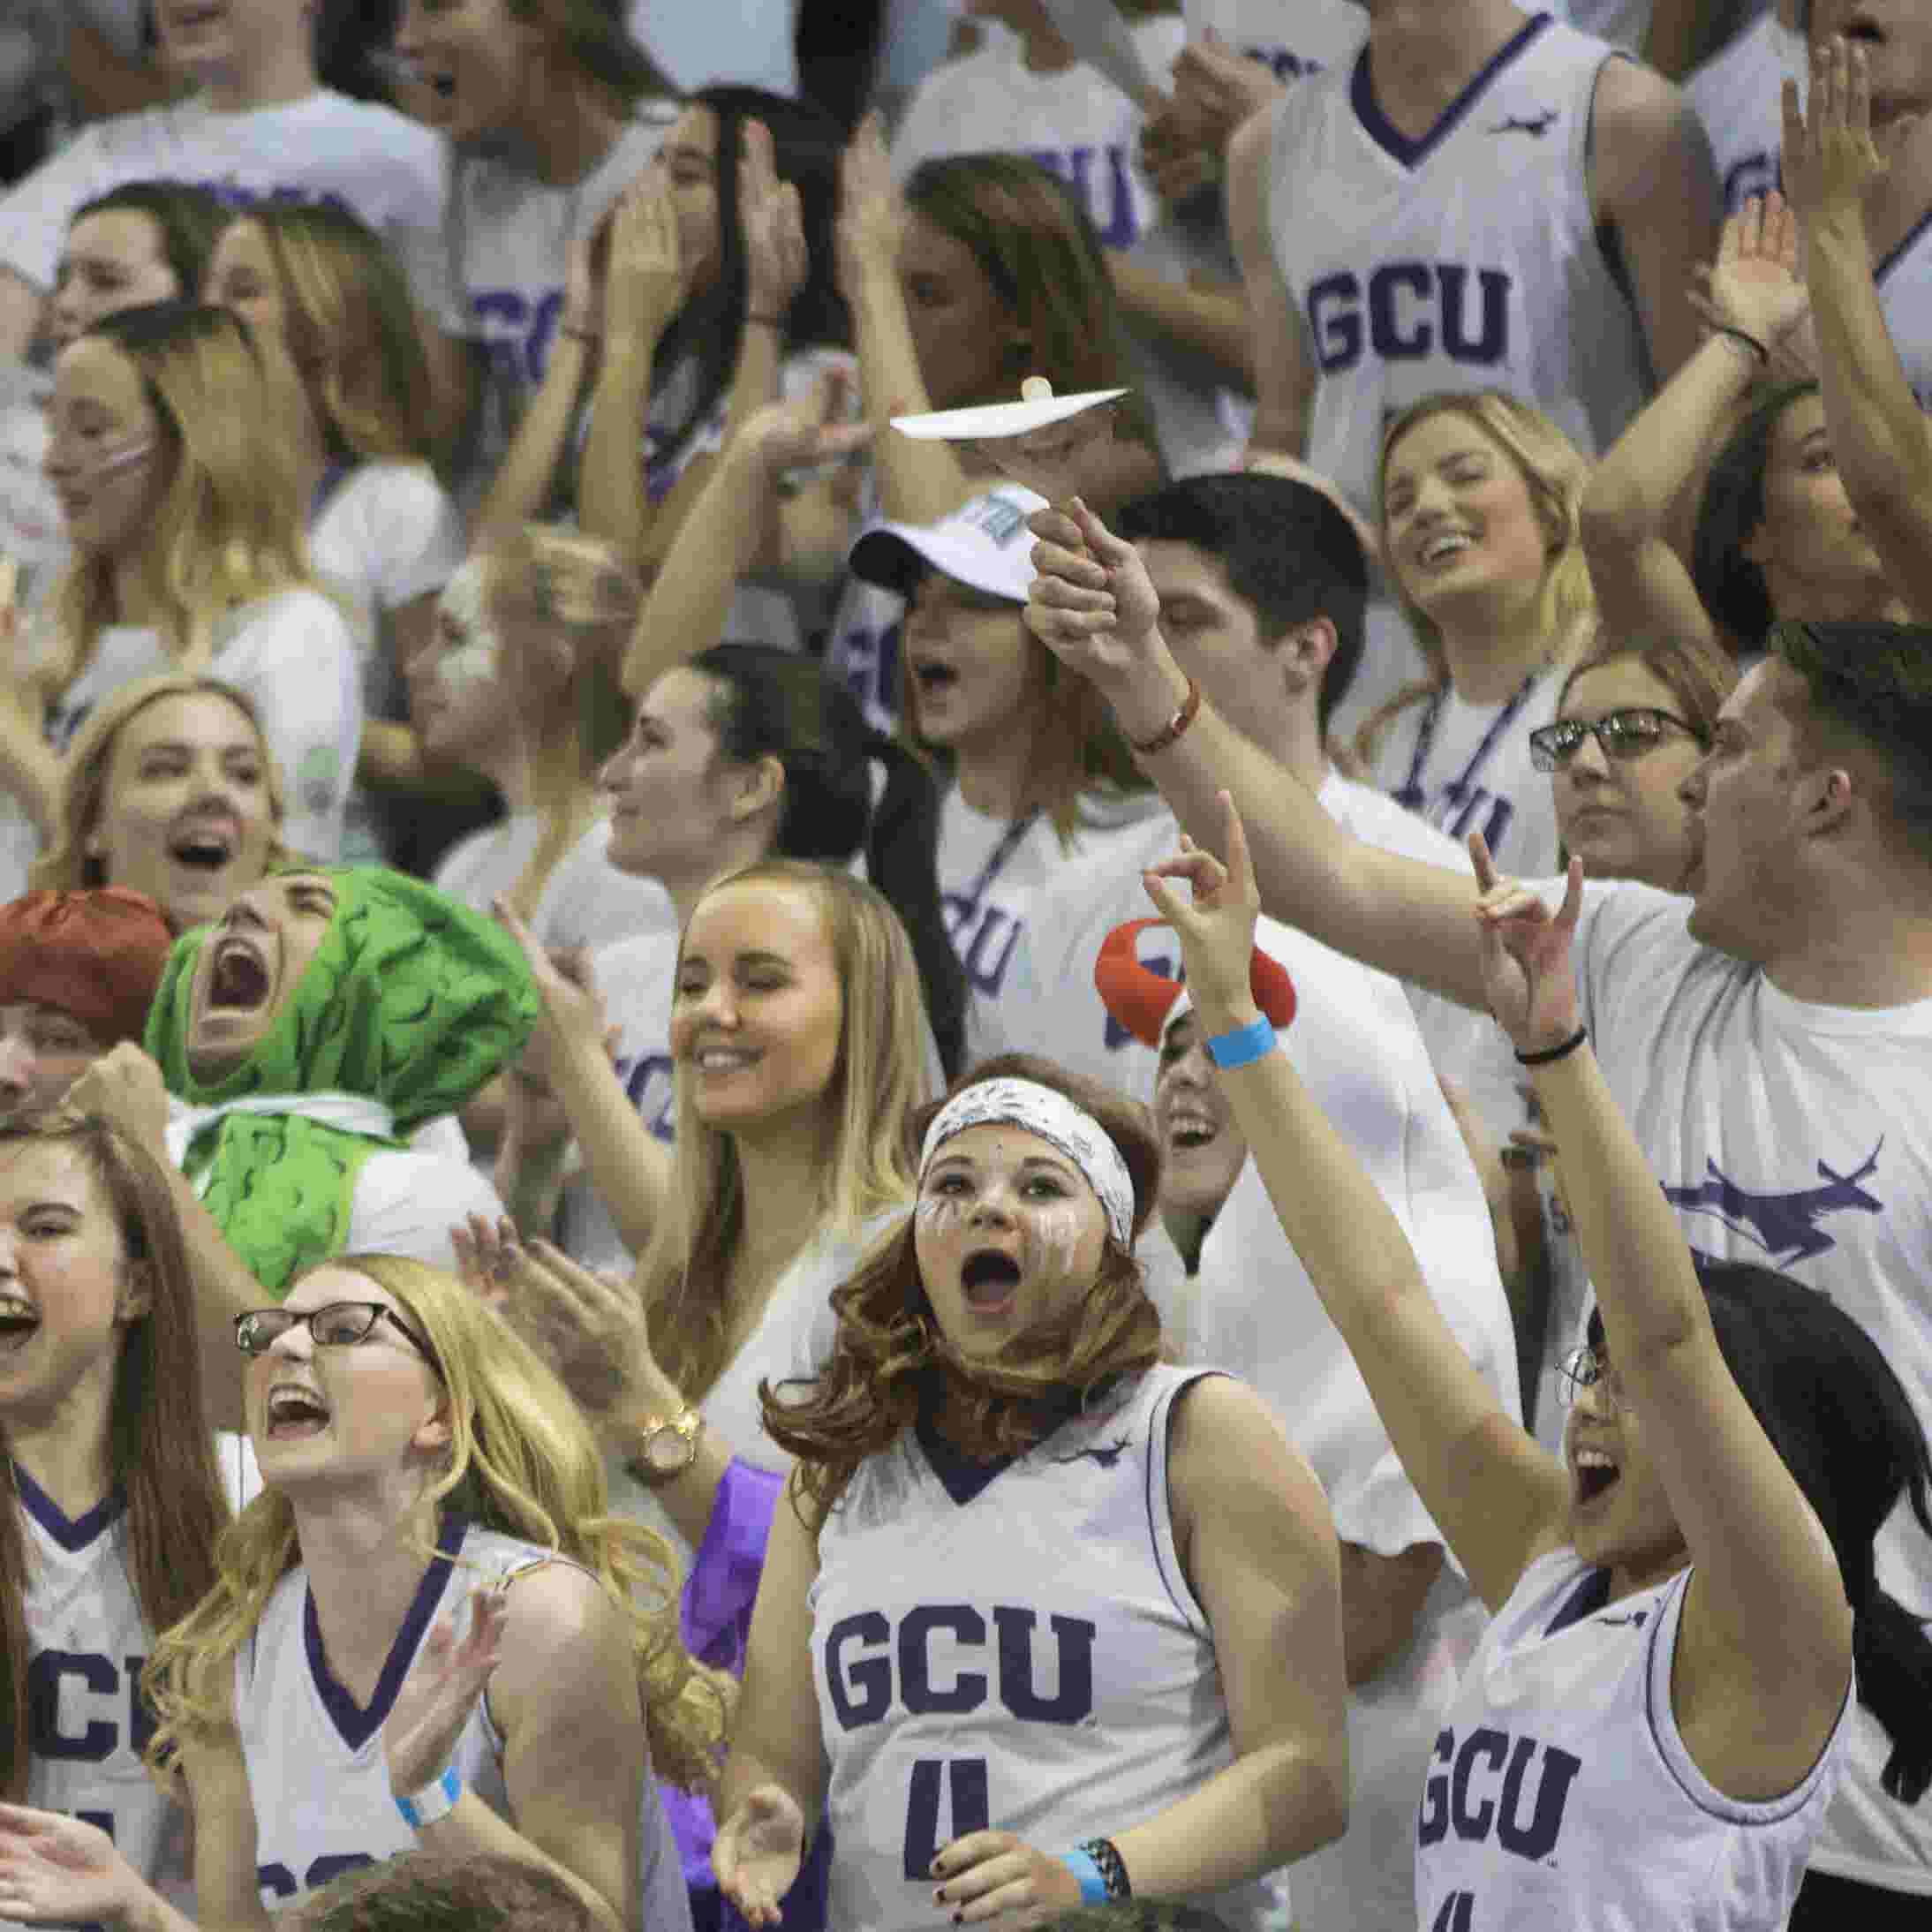 Are Gcu Fans The Craziest In College Hoops